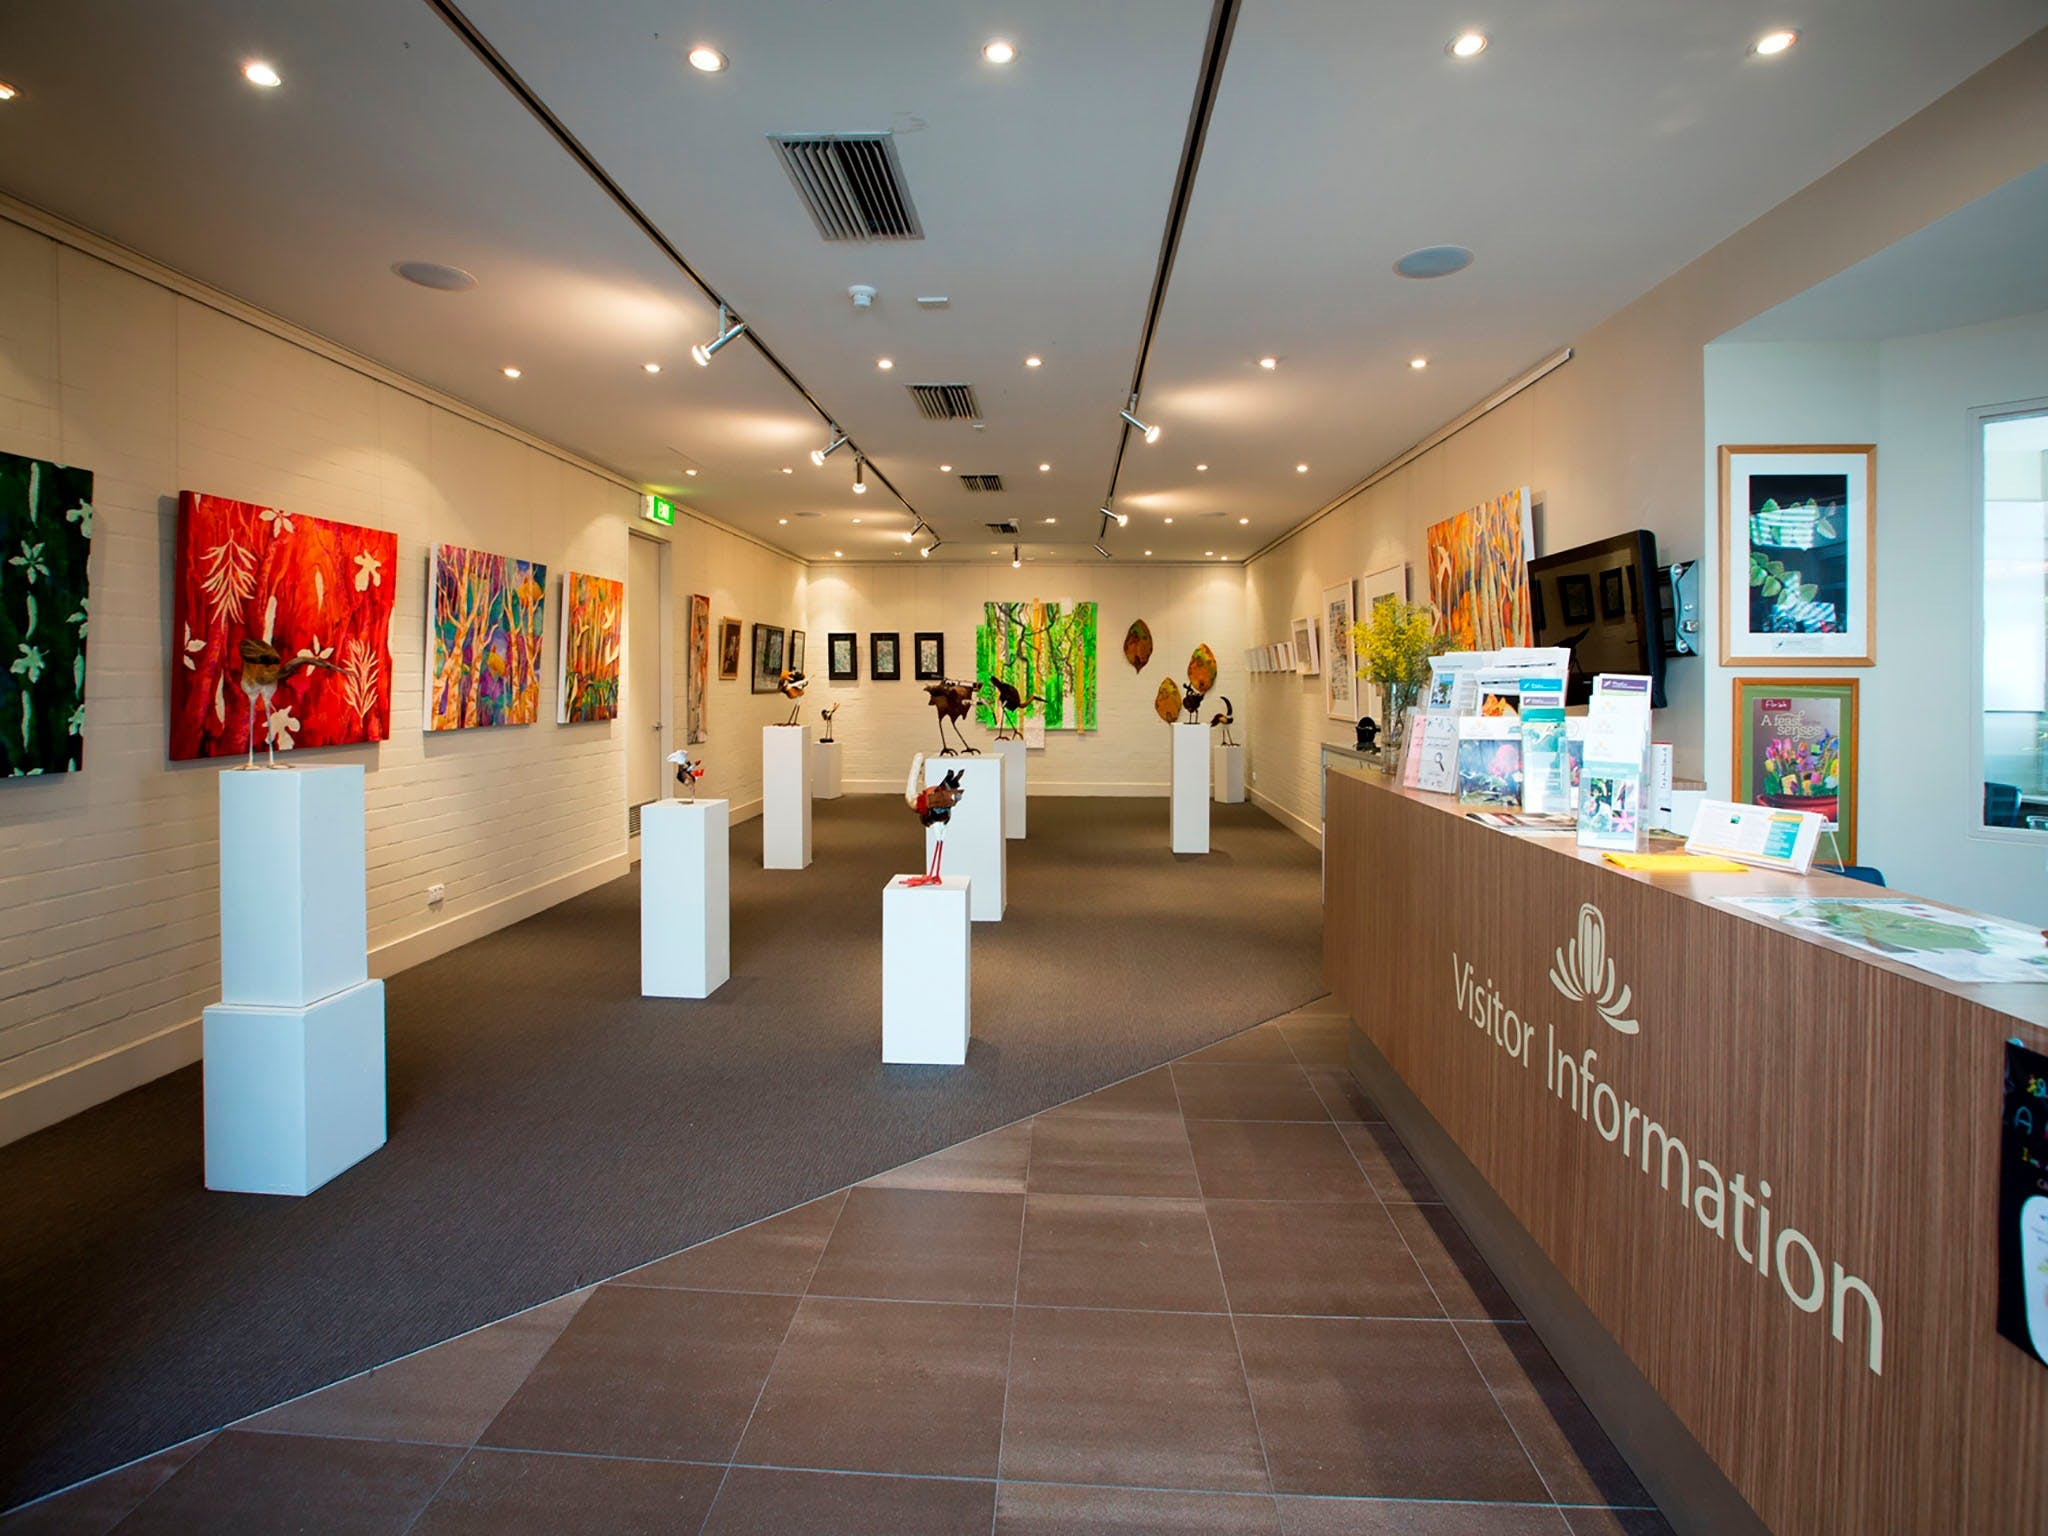 Australian National Botanic Gardens Visitor Centre Gallery - Accommodation QLD